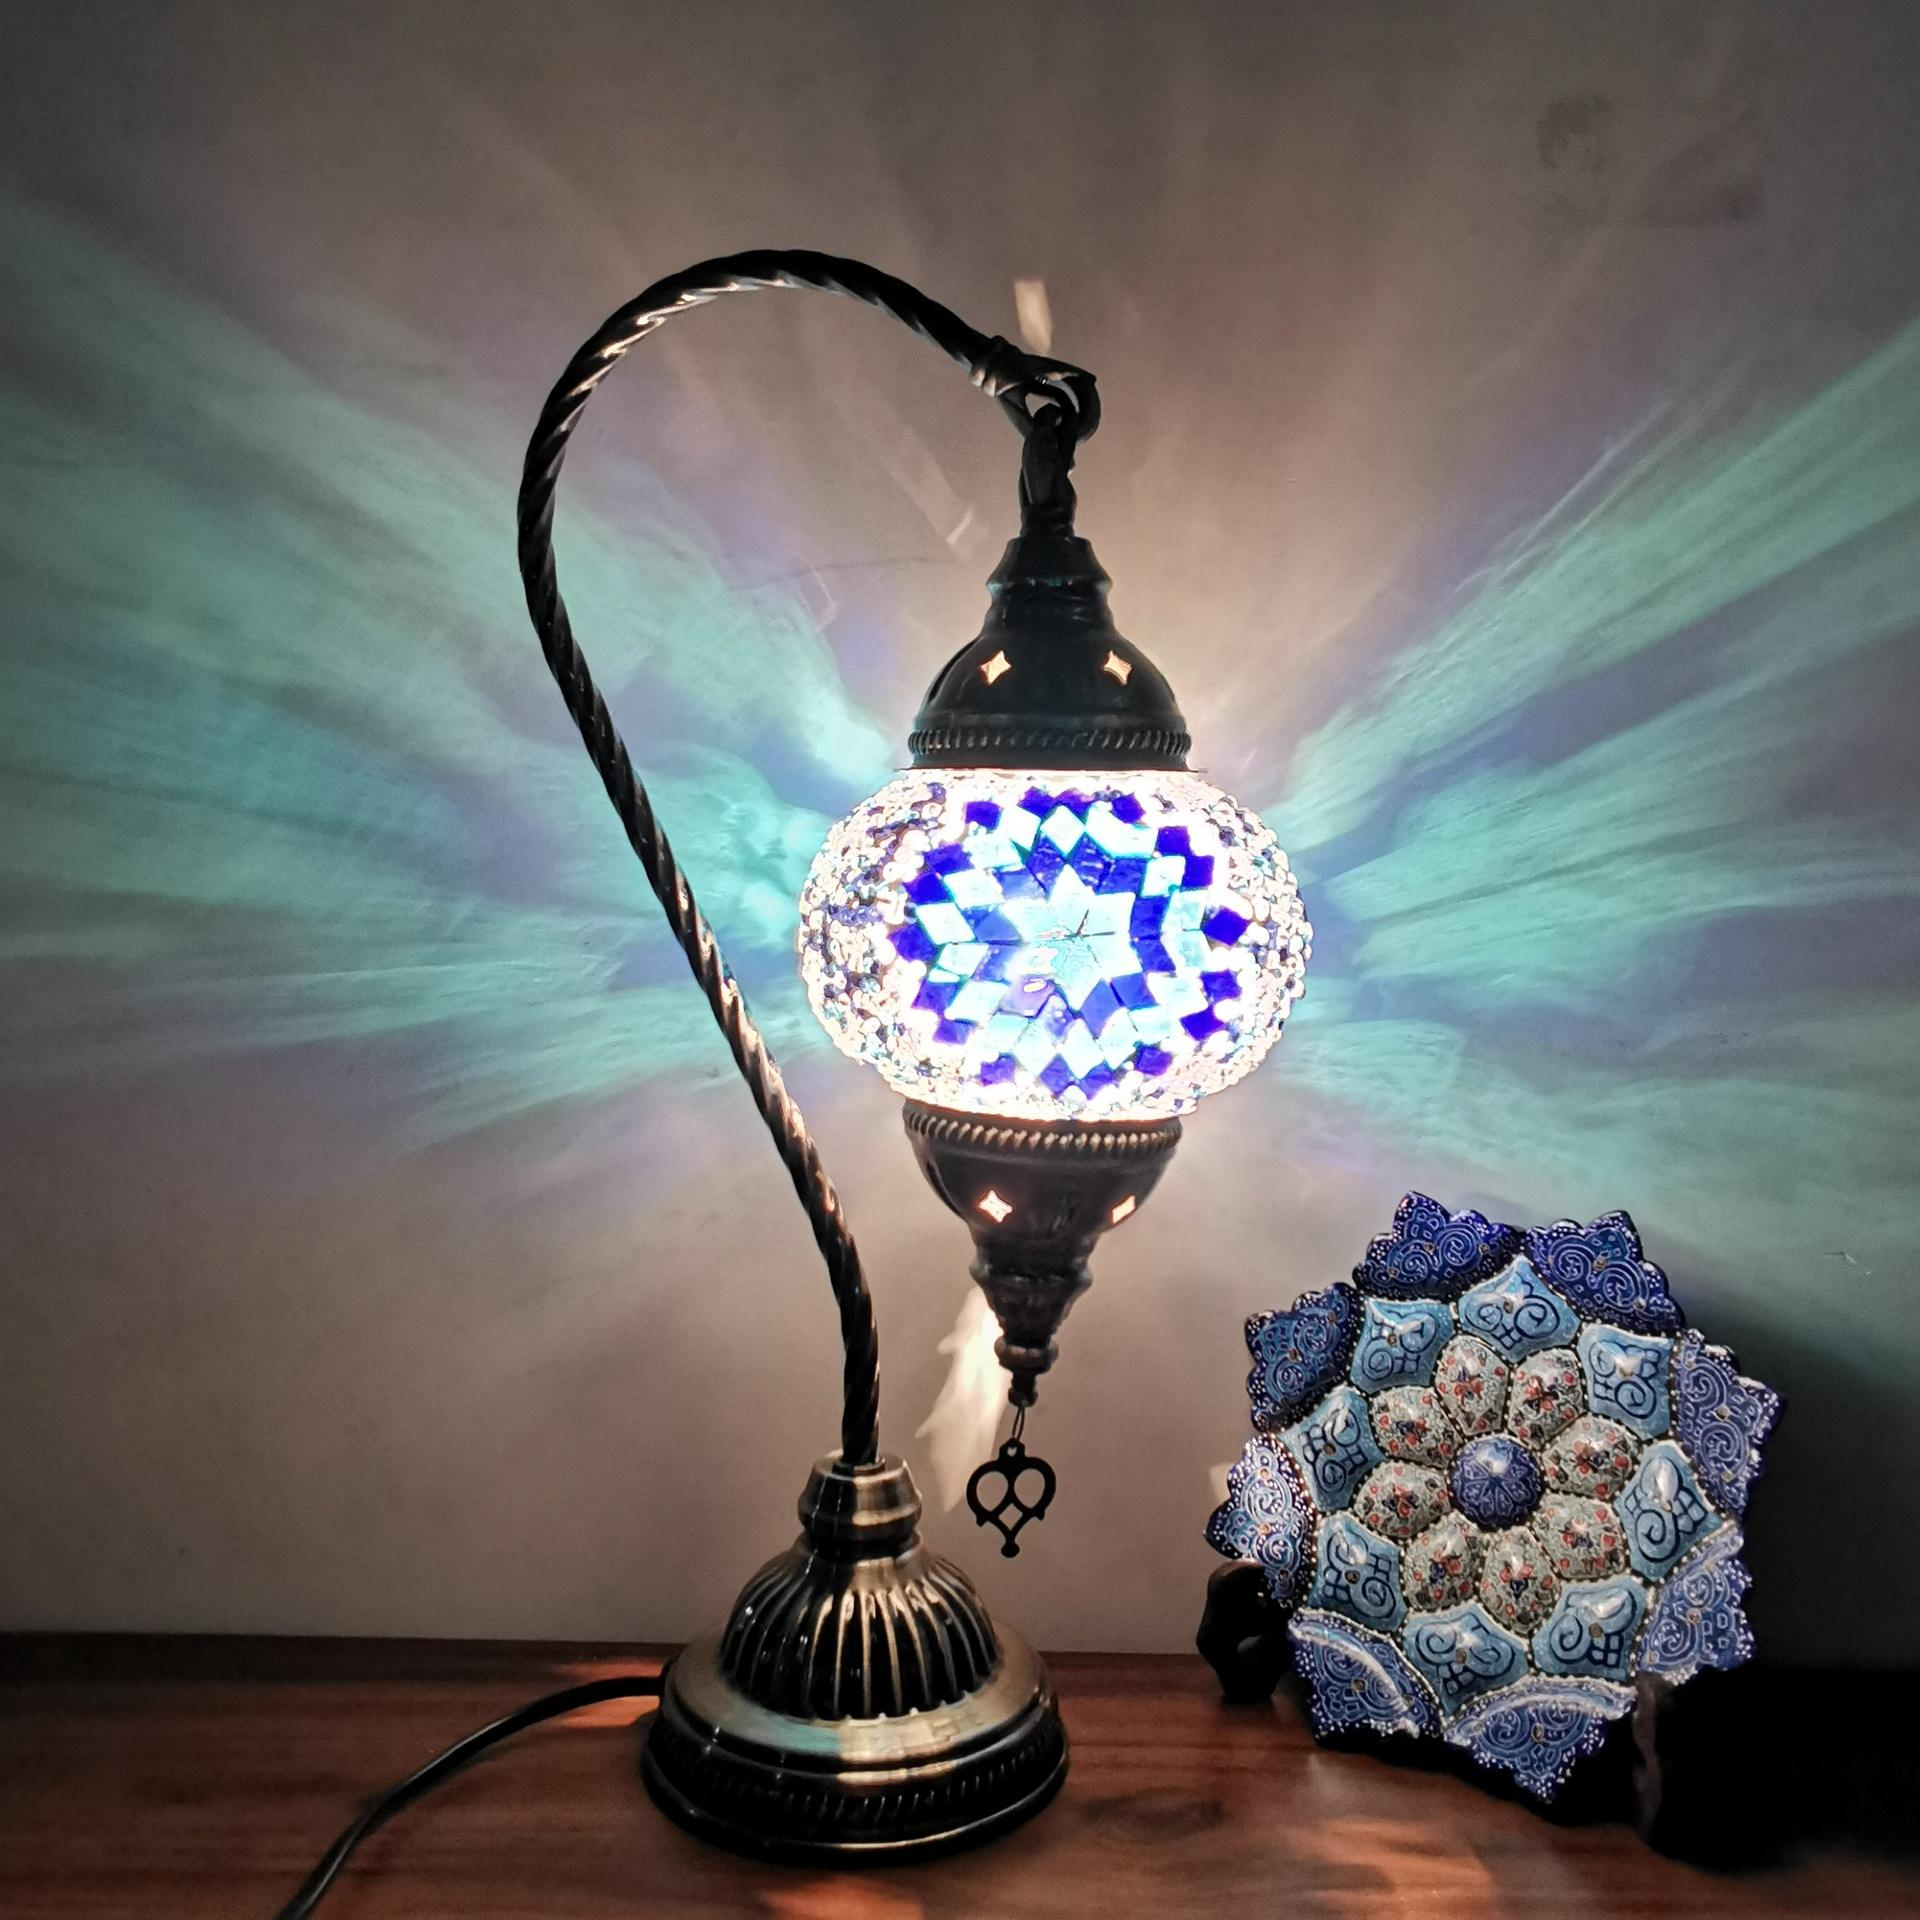 Turkish Lamp Stained Glass Art Mosaic Lamp Retro Hotel Table Arabic Night Lights lampara de mesa